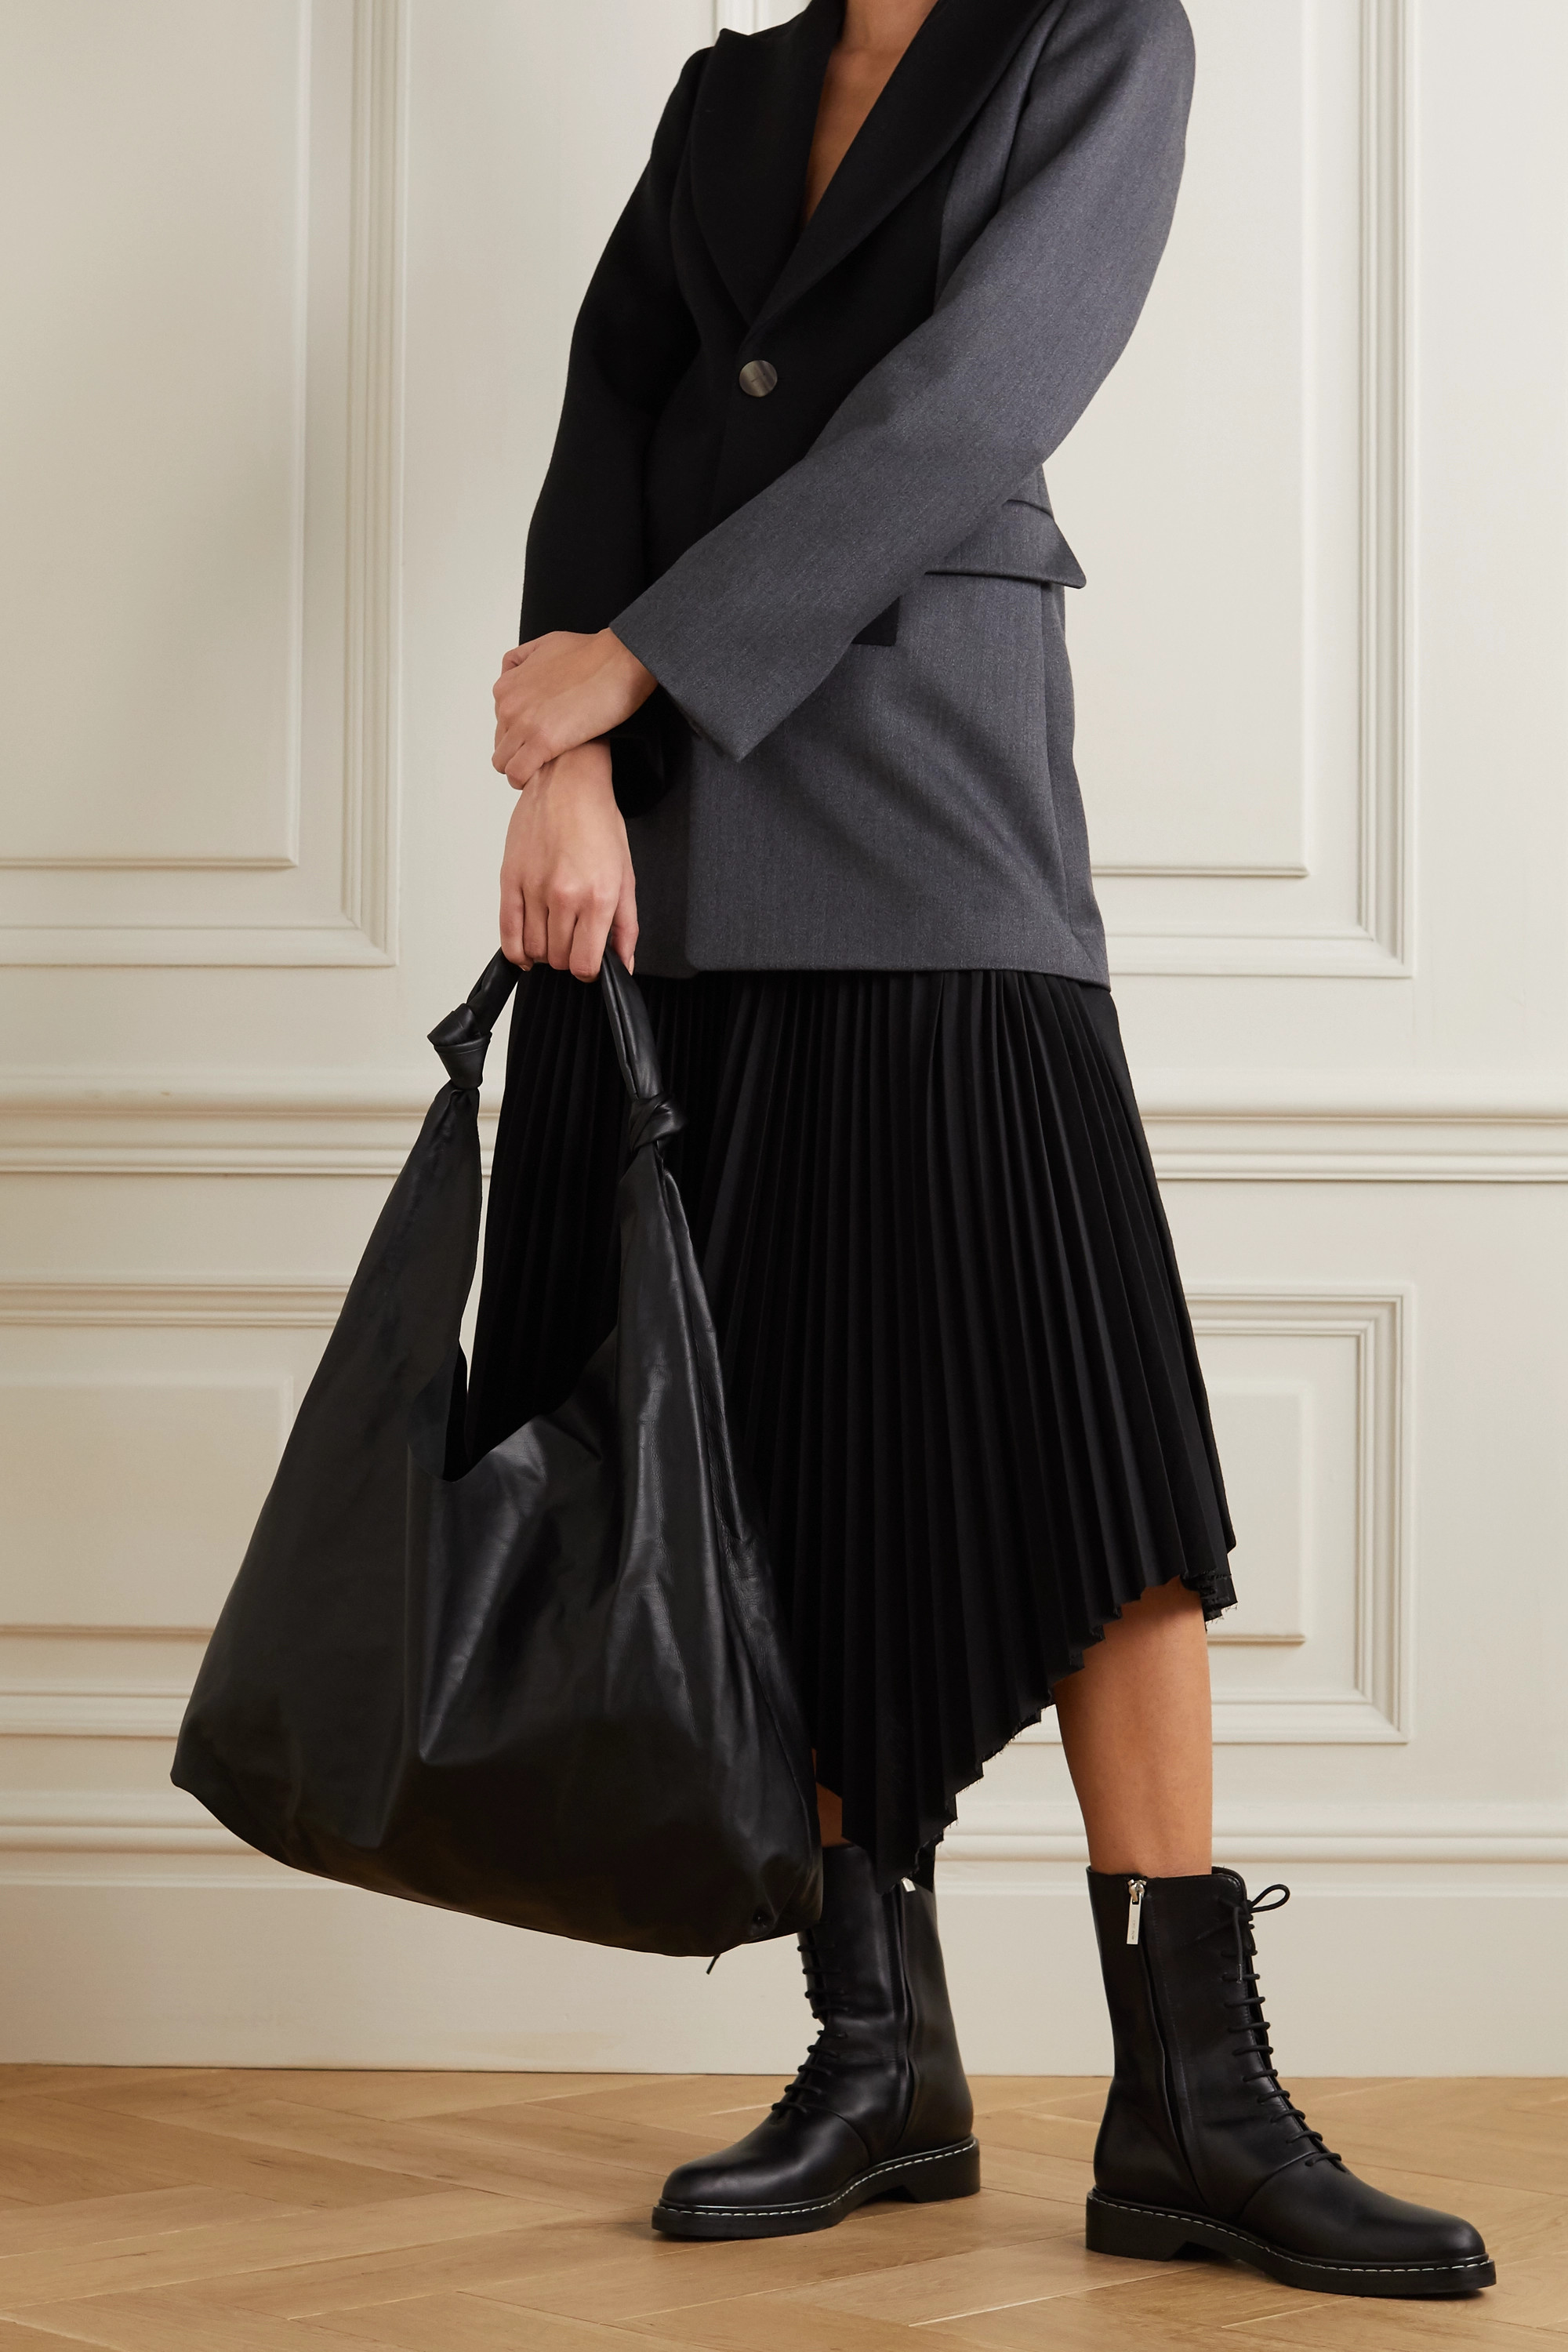 The Row Bindle Two leather shoulder bag